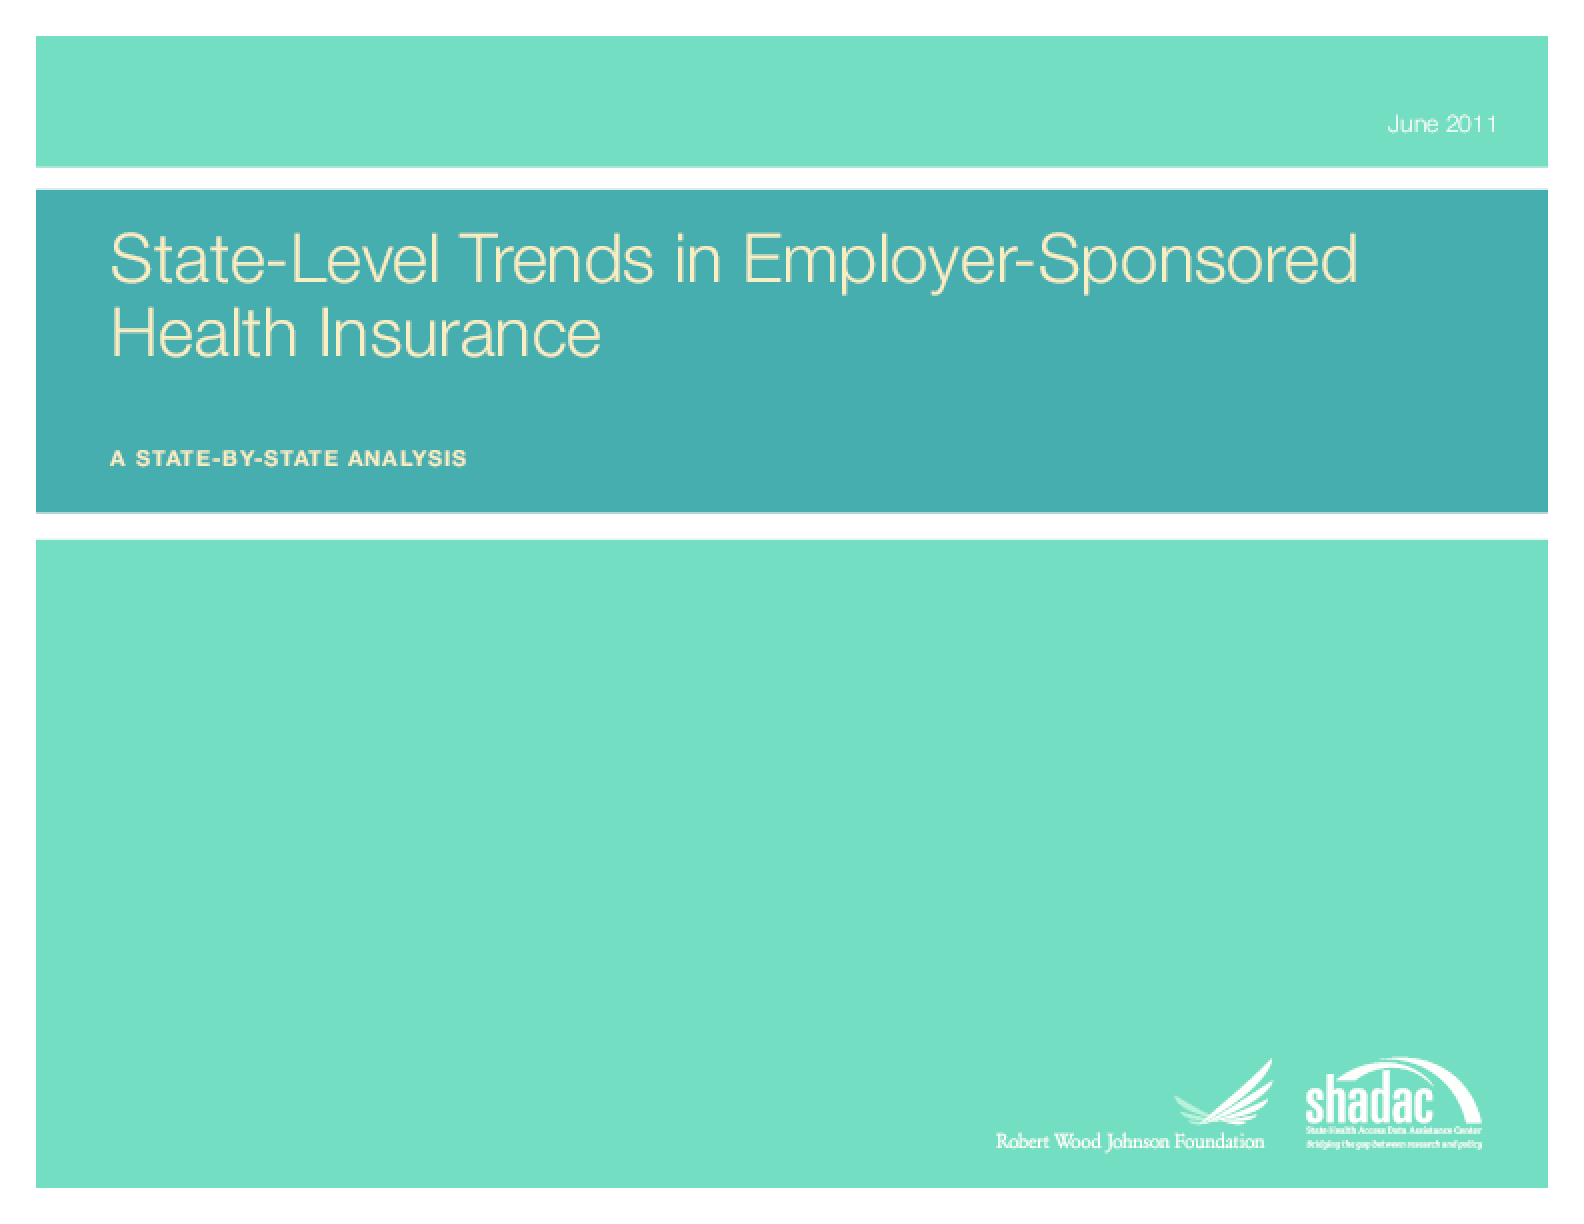 State-Level Trends in Employer-Sponsored Health Insurance: A State-by-State Analysis